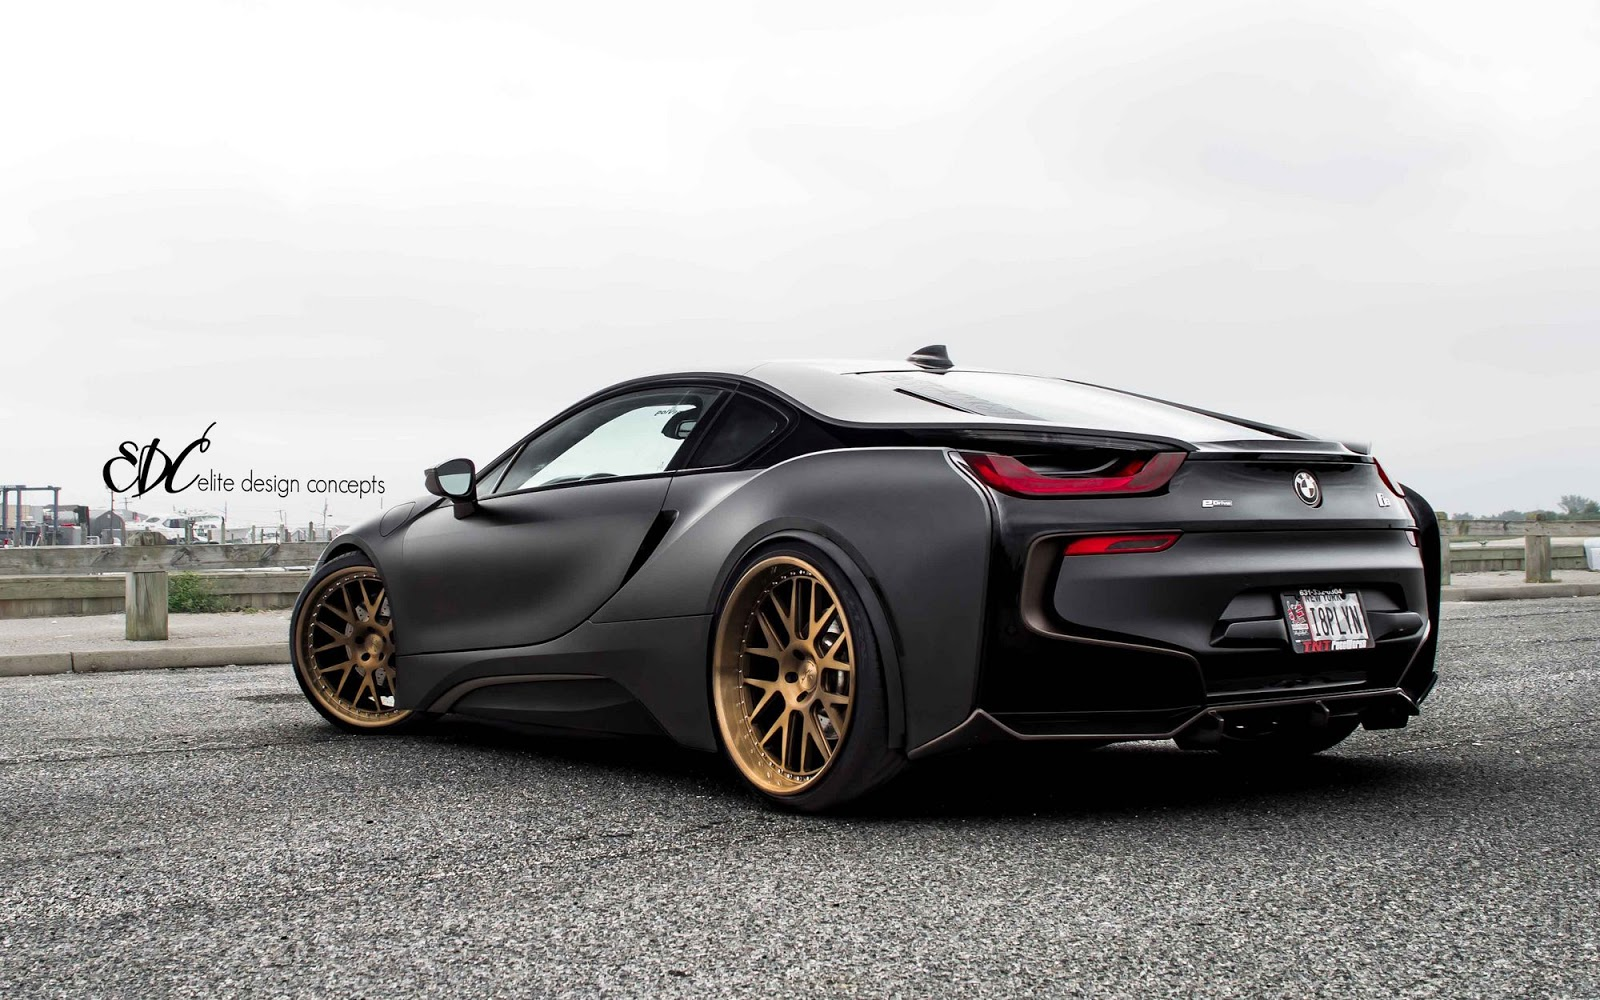 Matte Black Bmw >> Matte Black BMW i8 Stuns With Bronze Wheels | Carscoops